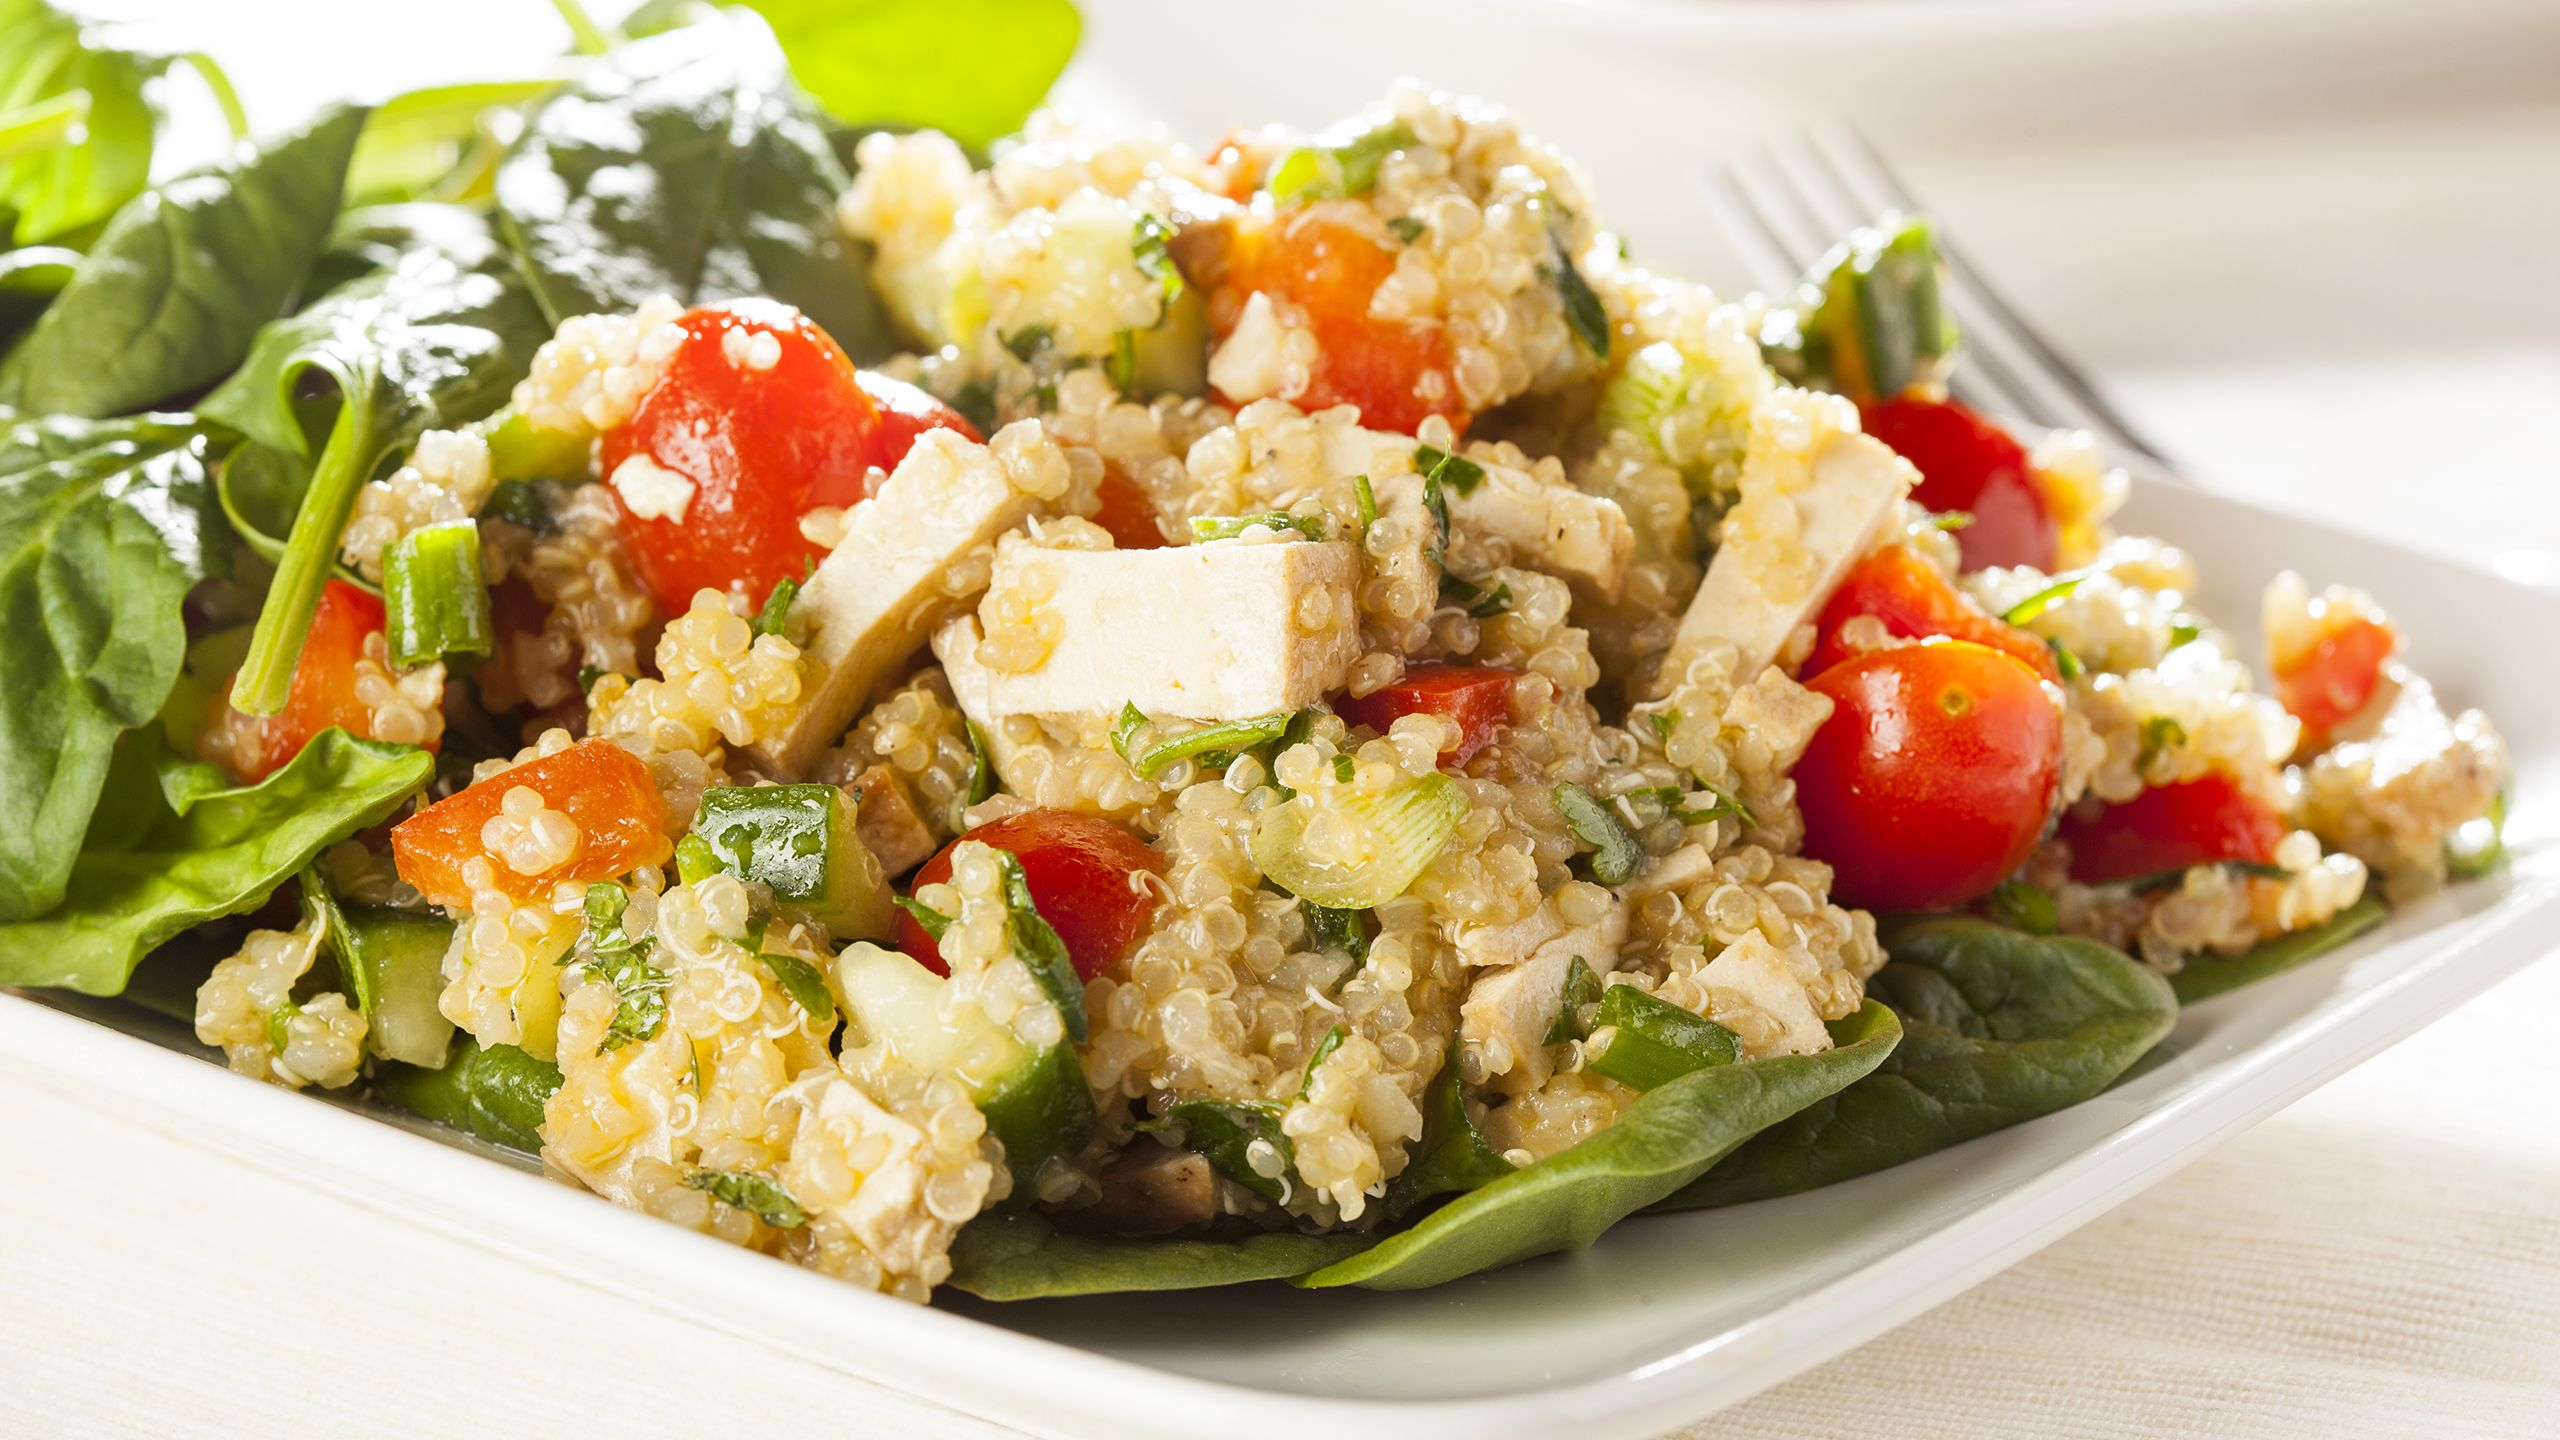 8 Easy Dinners Under 600 Calories